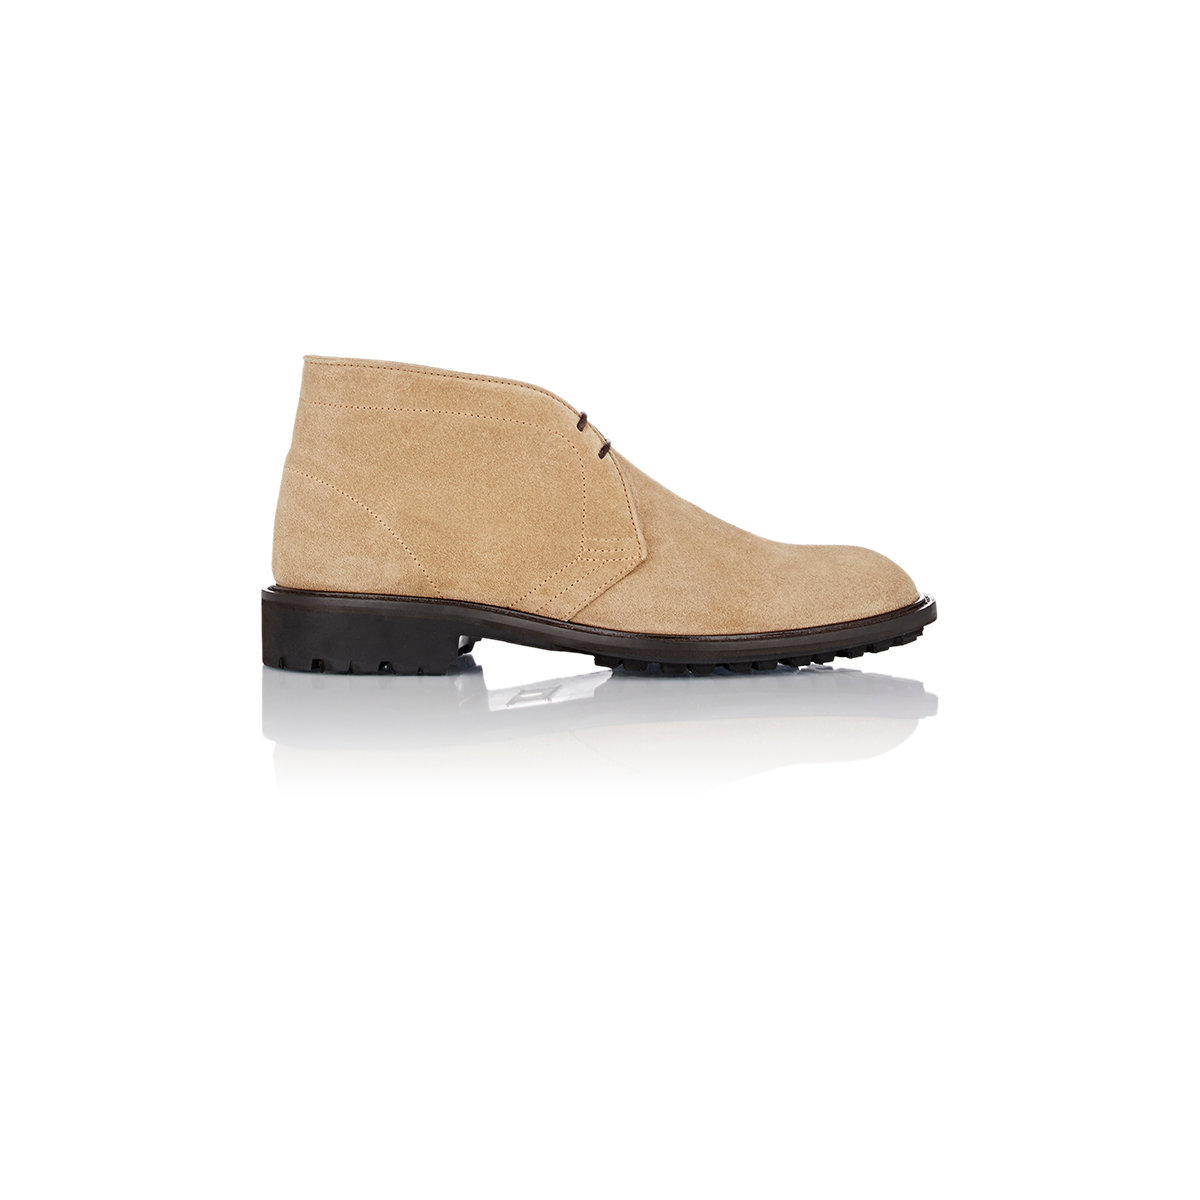 carlo soldaini suede chukka boots for lyst